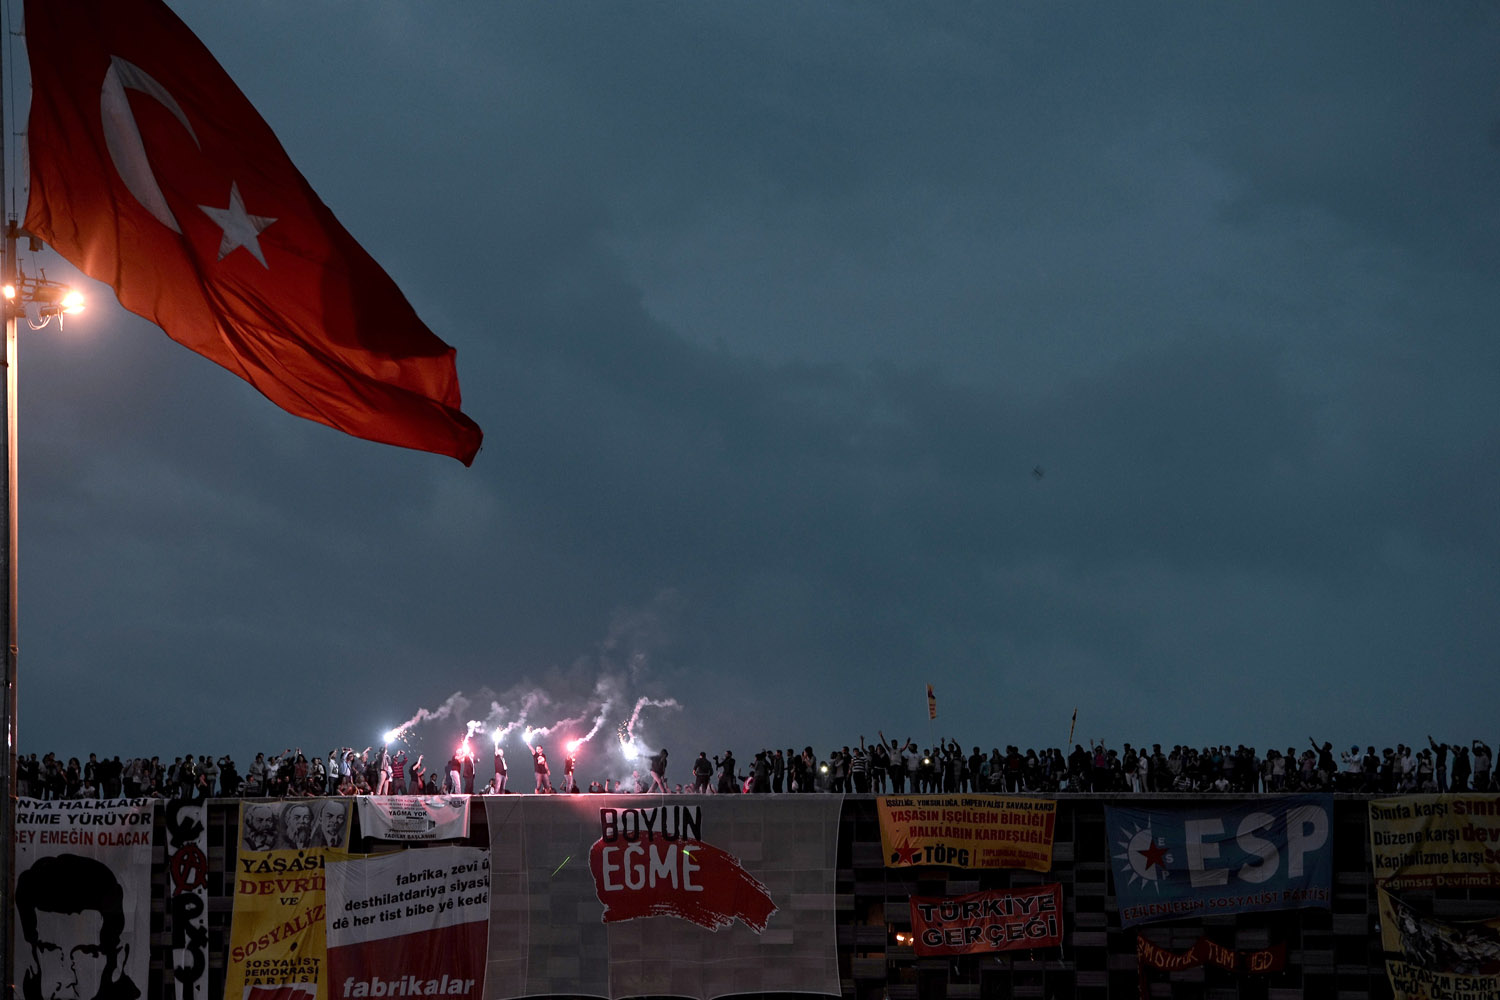 June 4, 2013. Protesters stand at the roof of a building at sunset in Taksim Square in Istanbul, Turkey.